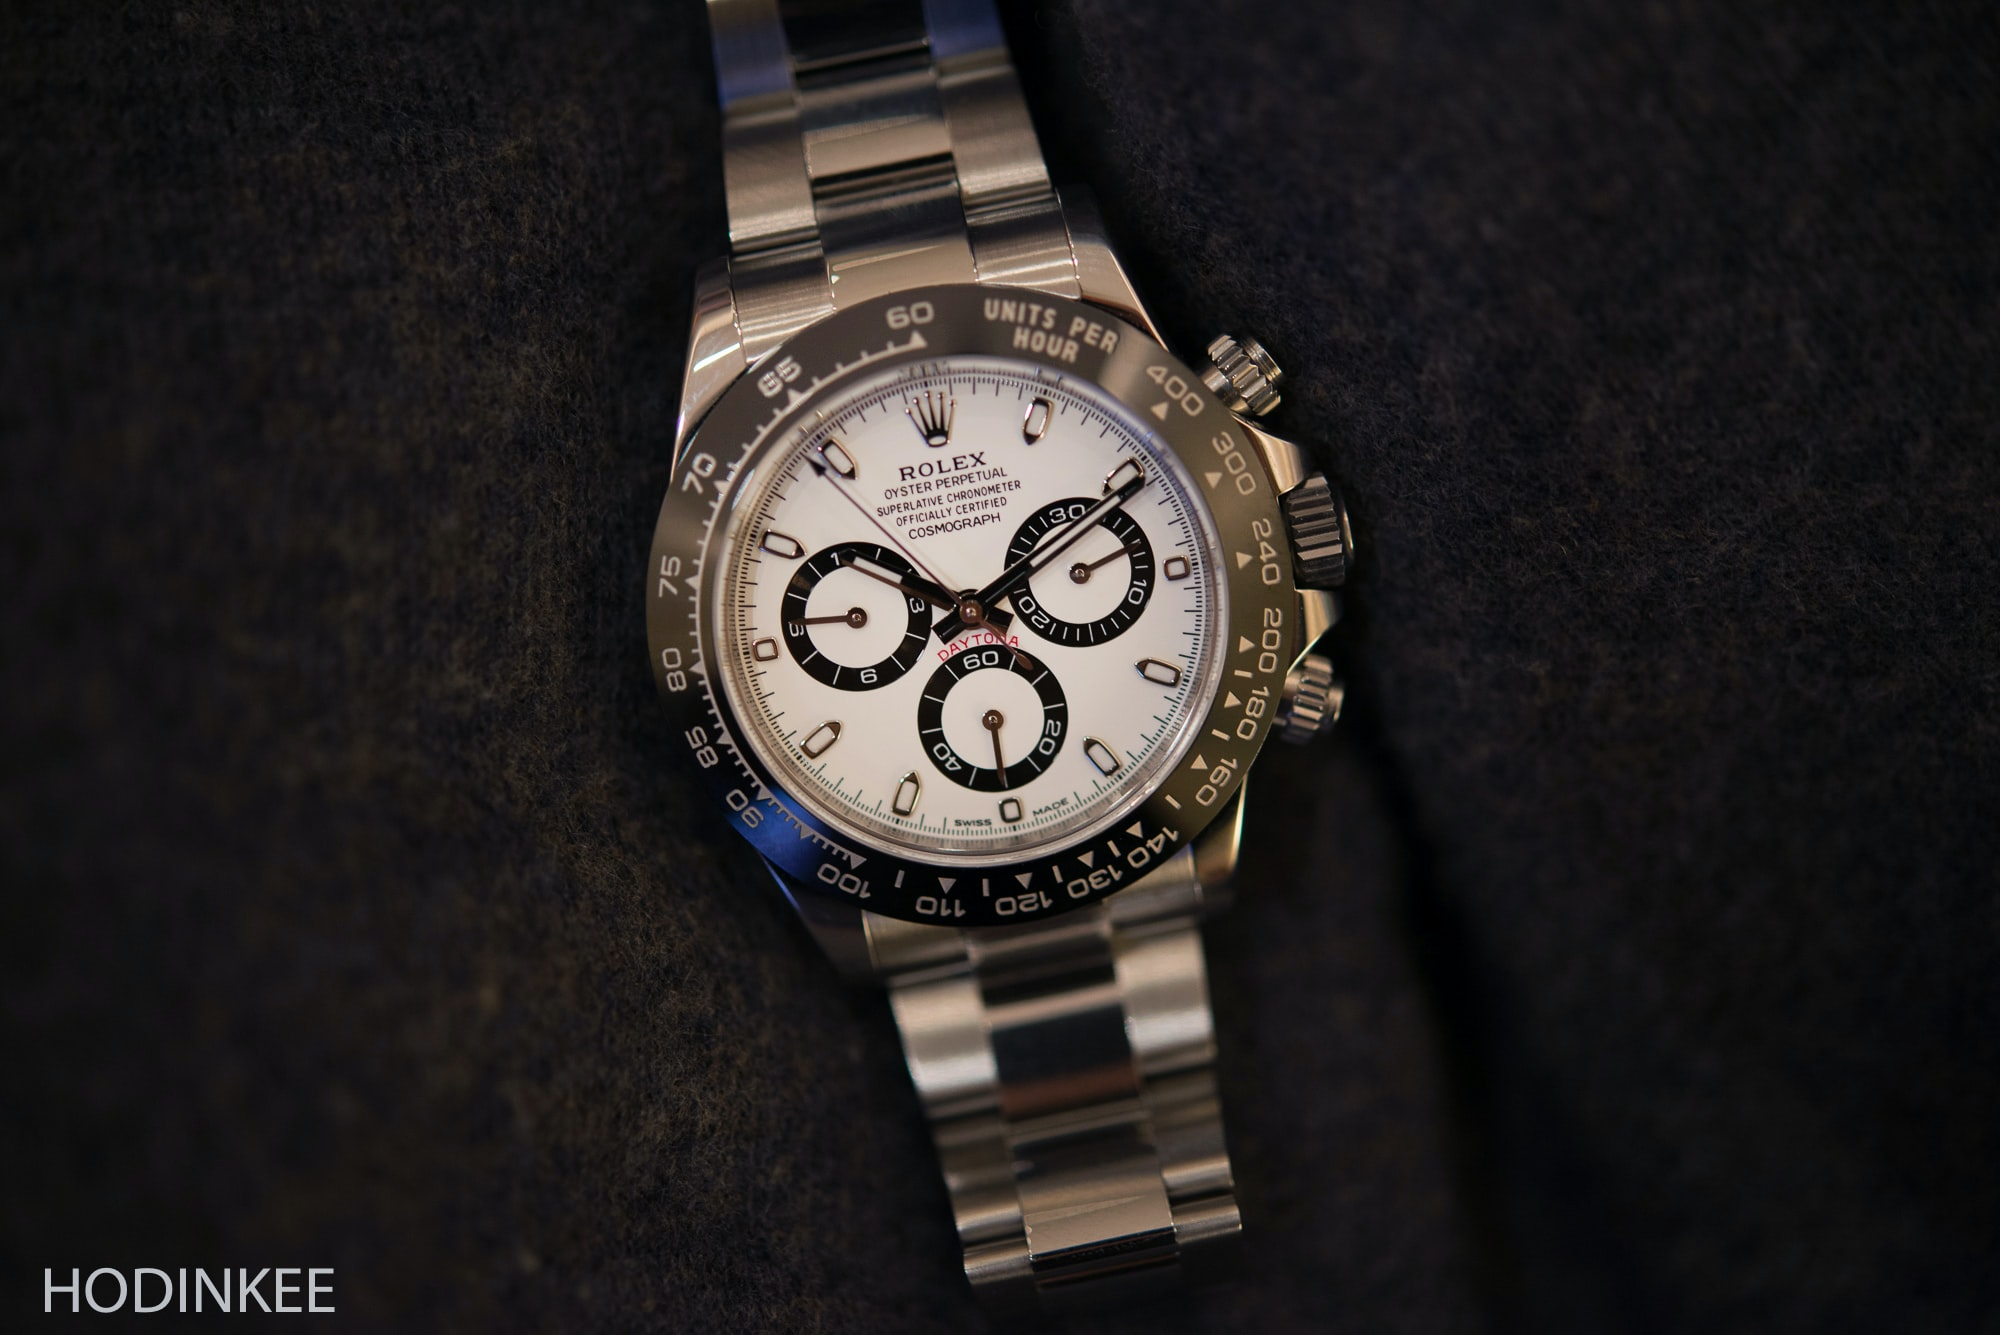 The Year In Review: The Top 20 Most Popular HODINKEE Posts Of 2016 The Year In Review: The Top 20 Most Popular HODINKEE Posts Of 2016 RolexDaytona116500LN 26 copy